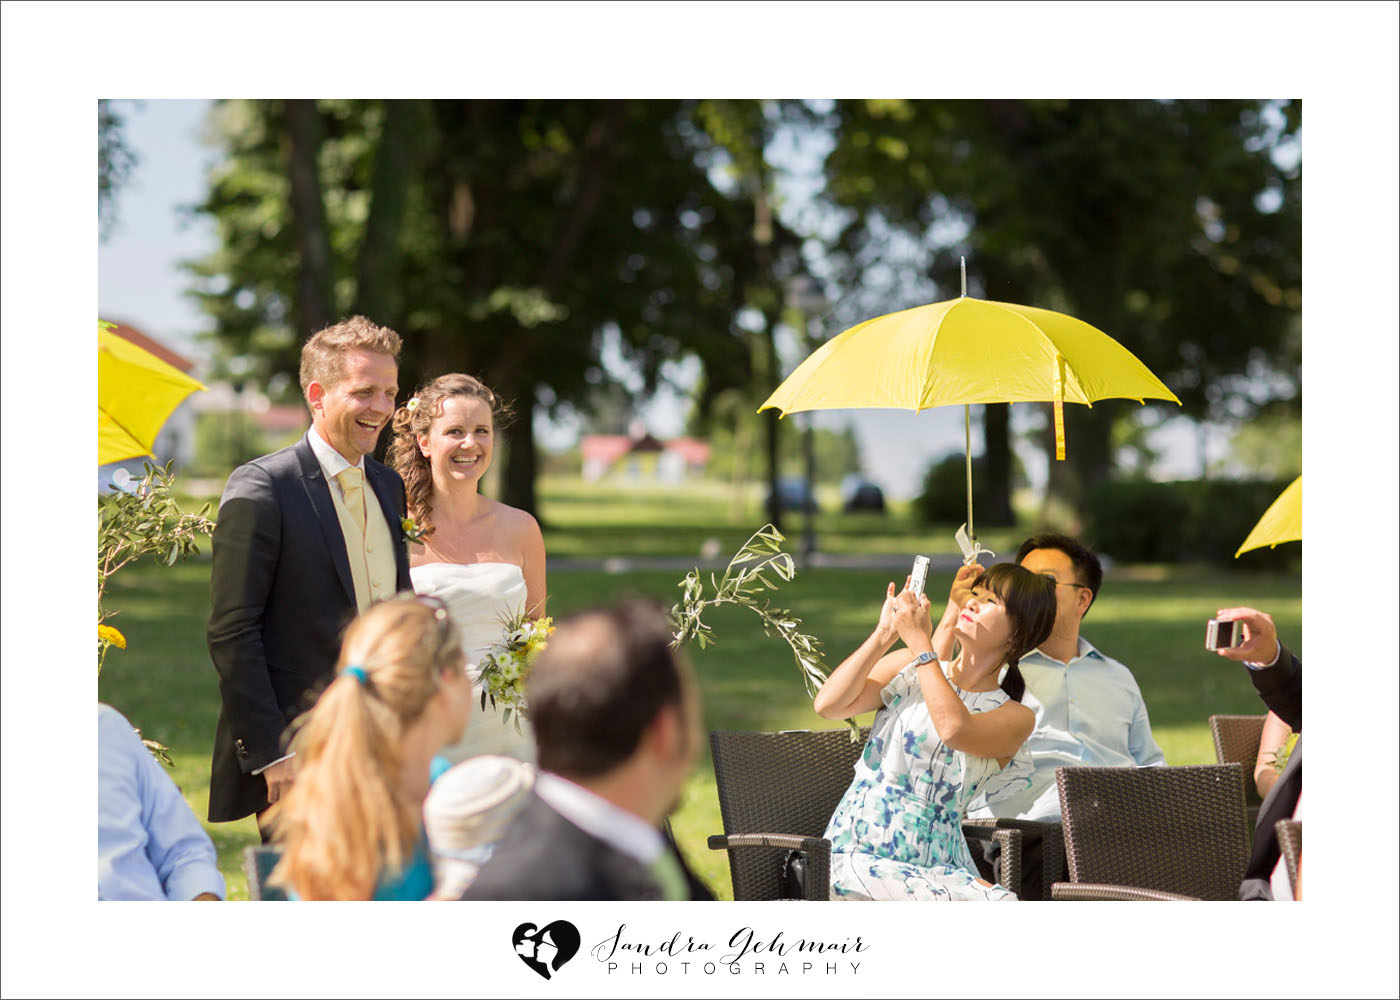 023_heiraten_am_see_spitzvilla_sandra_gehmair